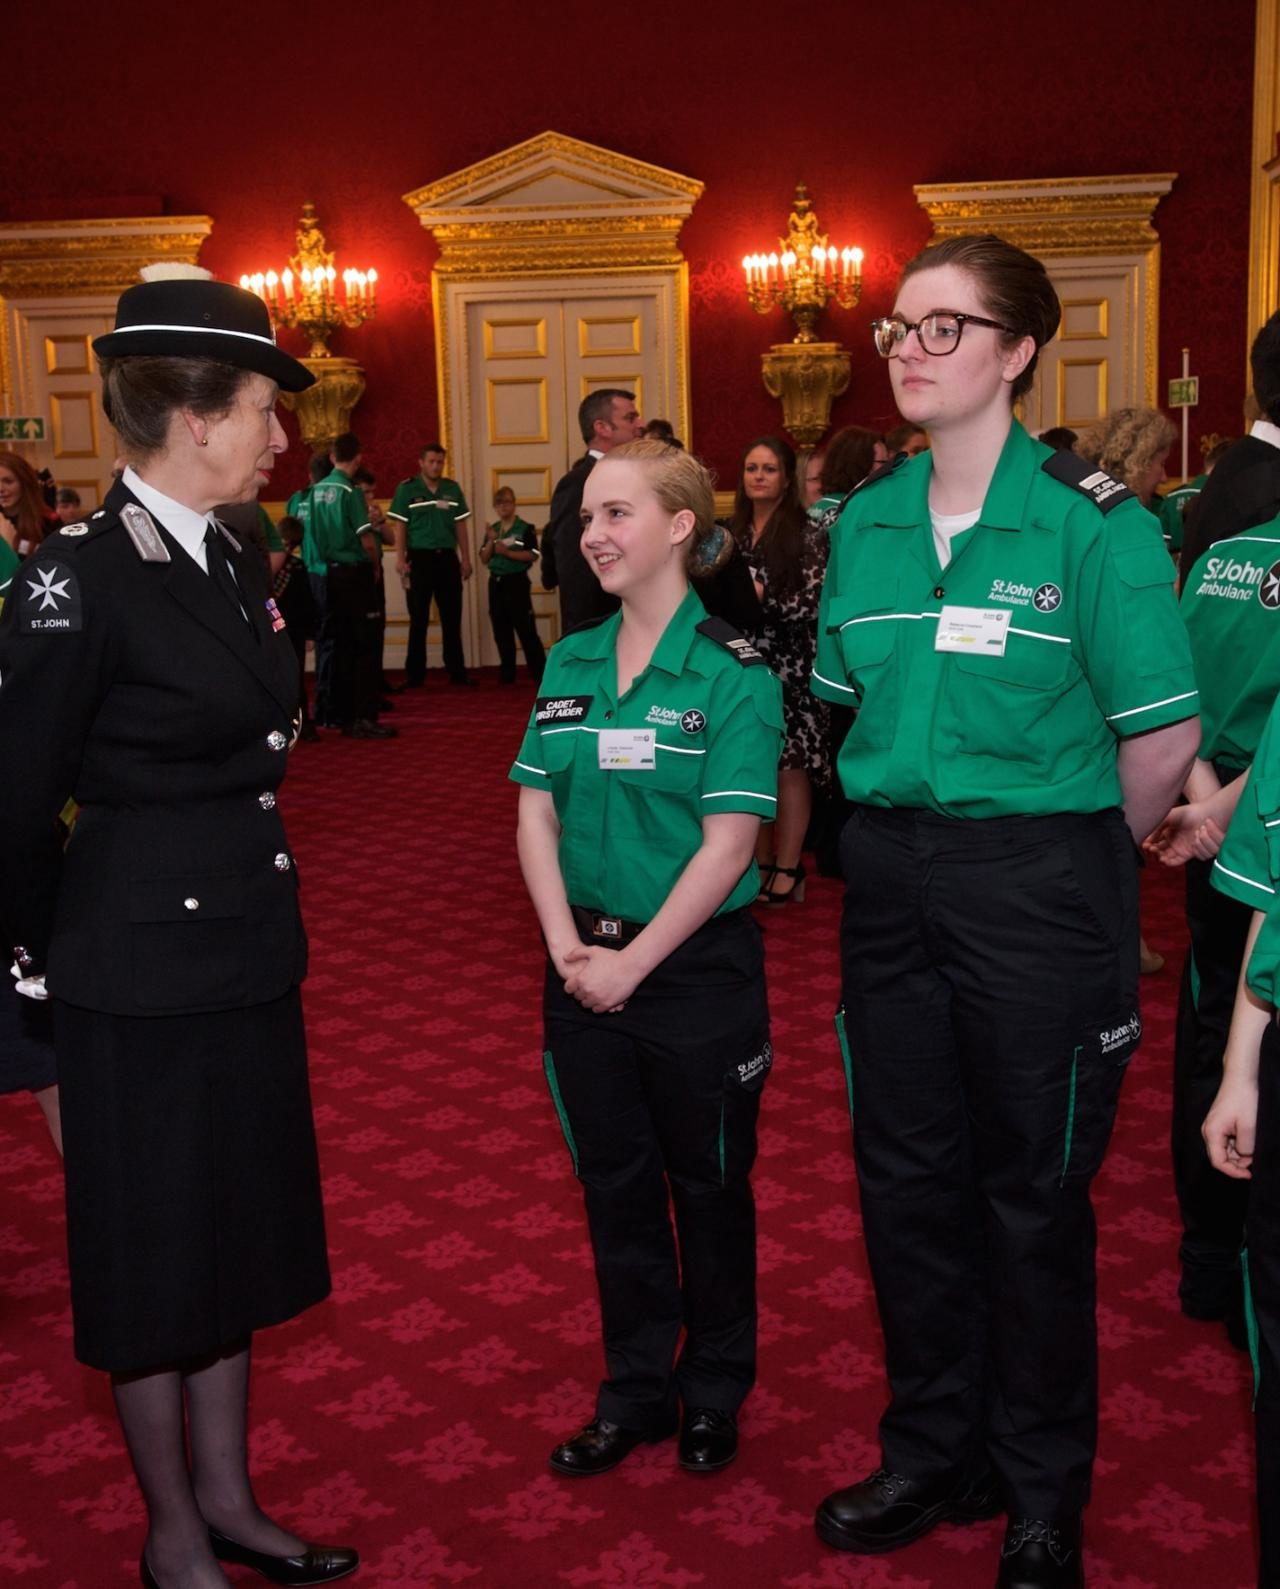 Her Royal Highness this afternoon attended a St. John Ambulance Young Achievers' Reception